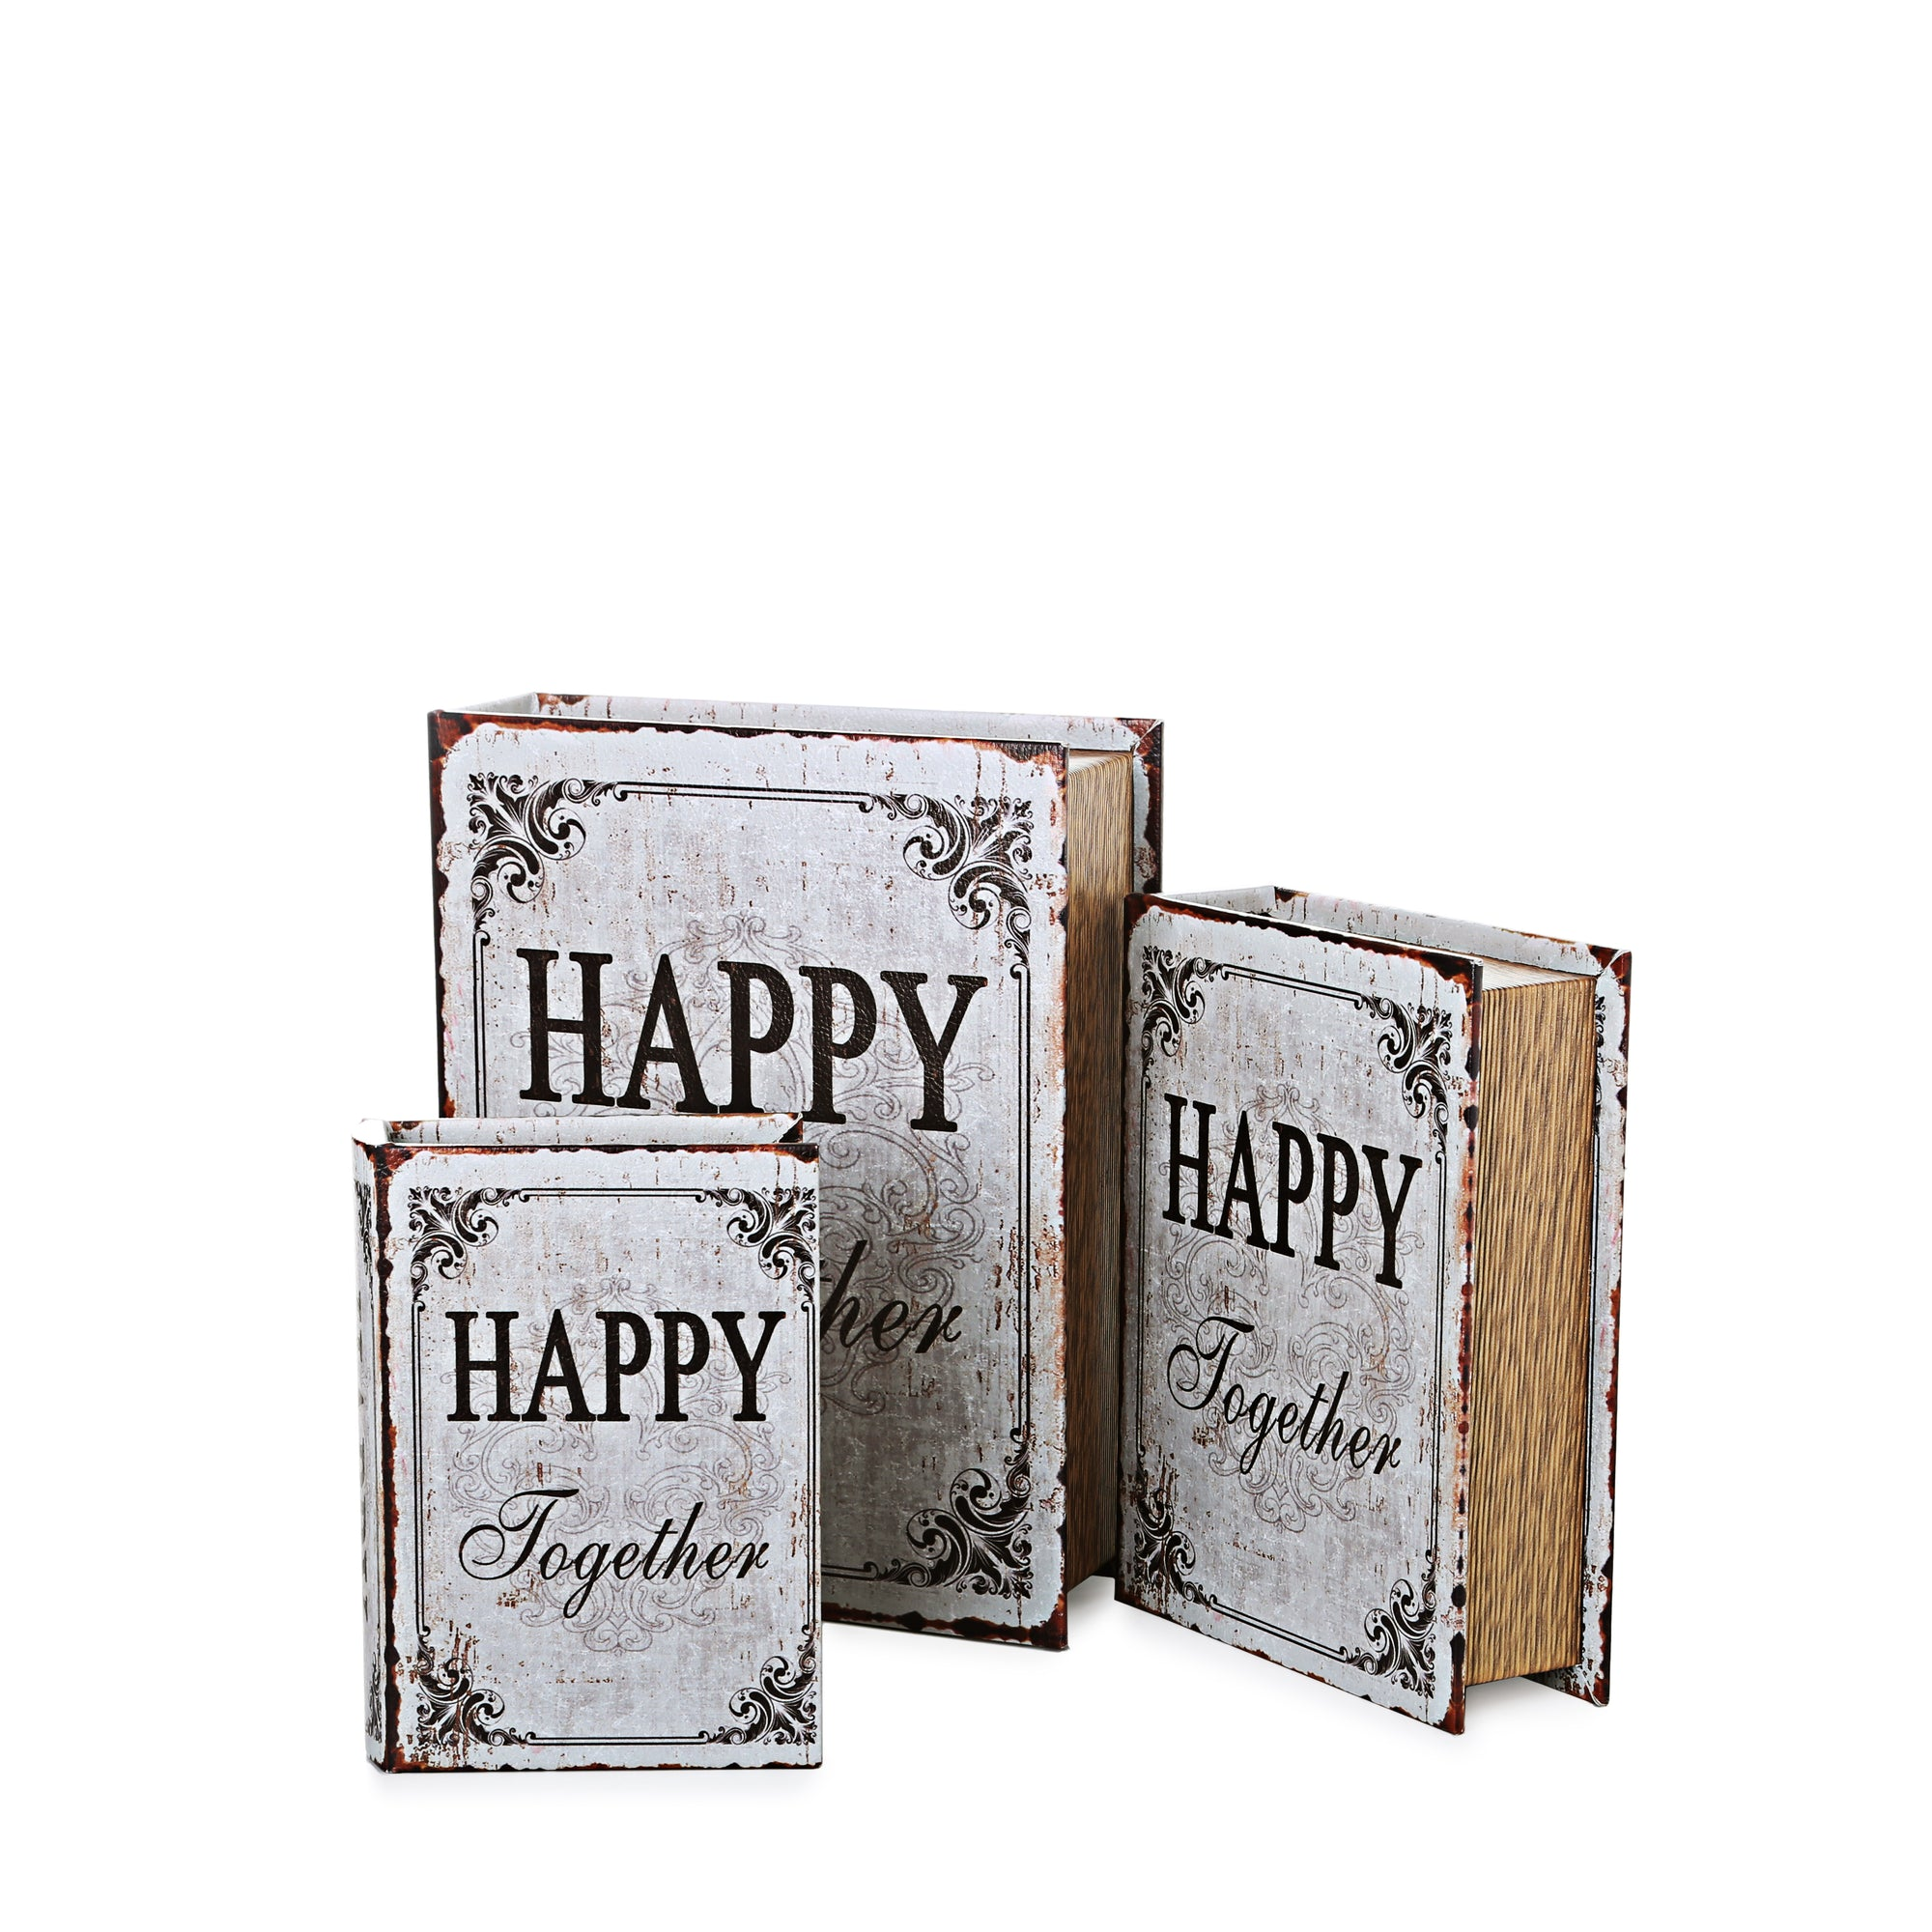 Happy Togather Books Storage Boxes (Set Of 3)